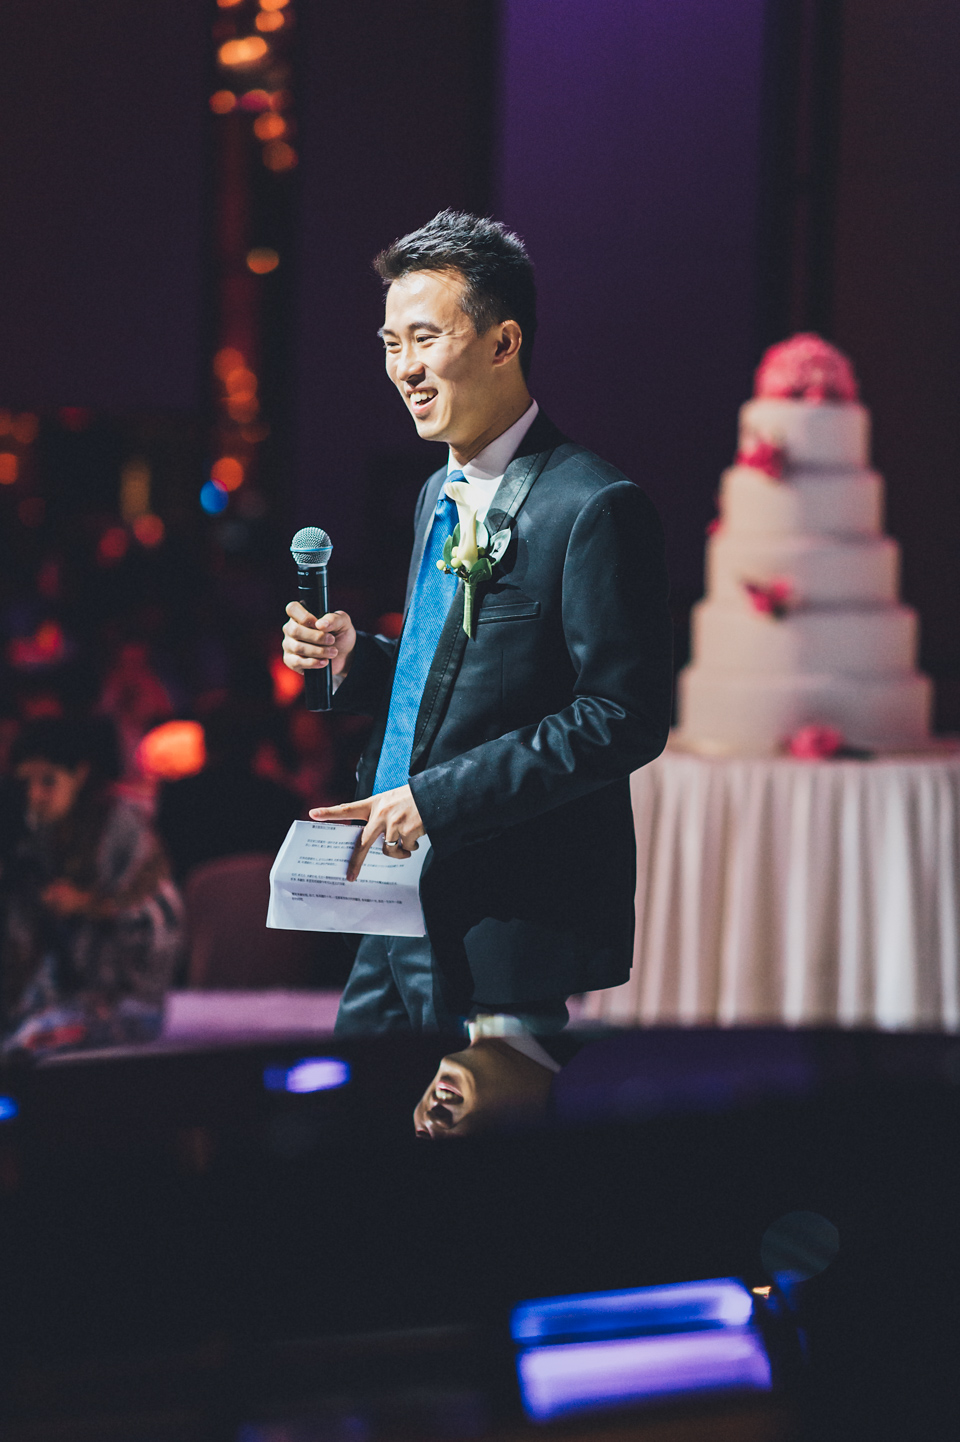 hongkong-wedding-photo-video-152